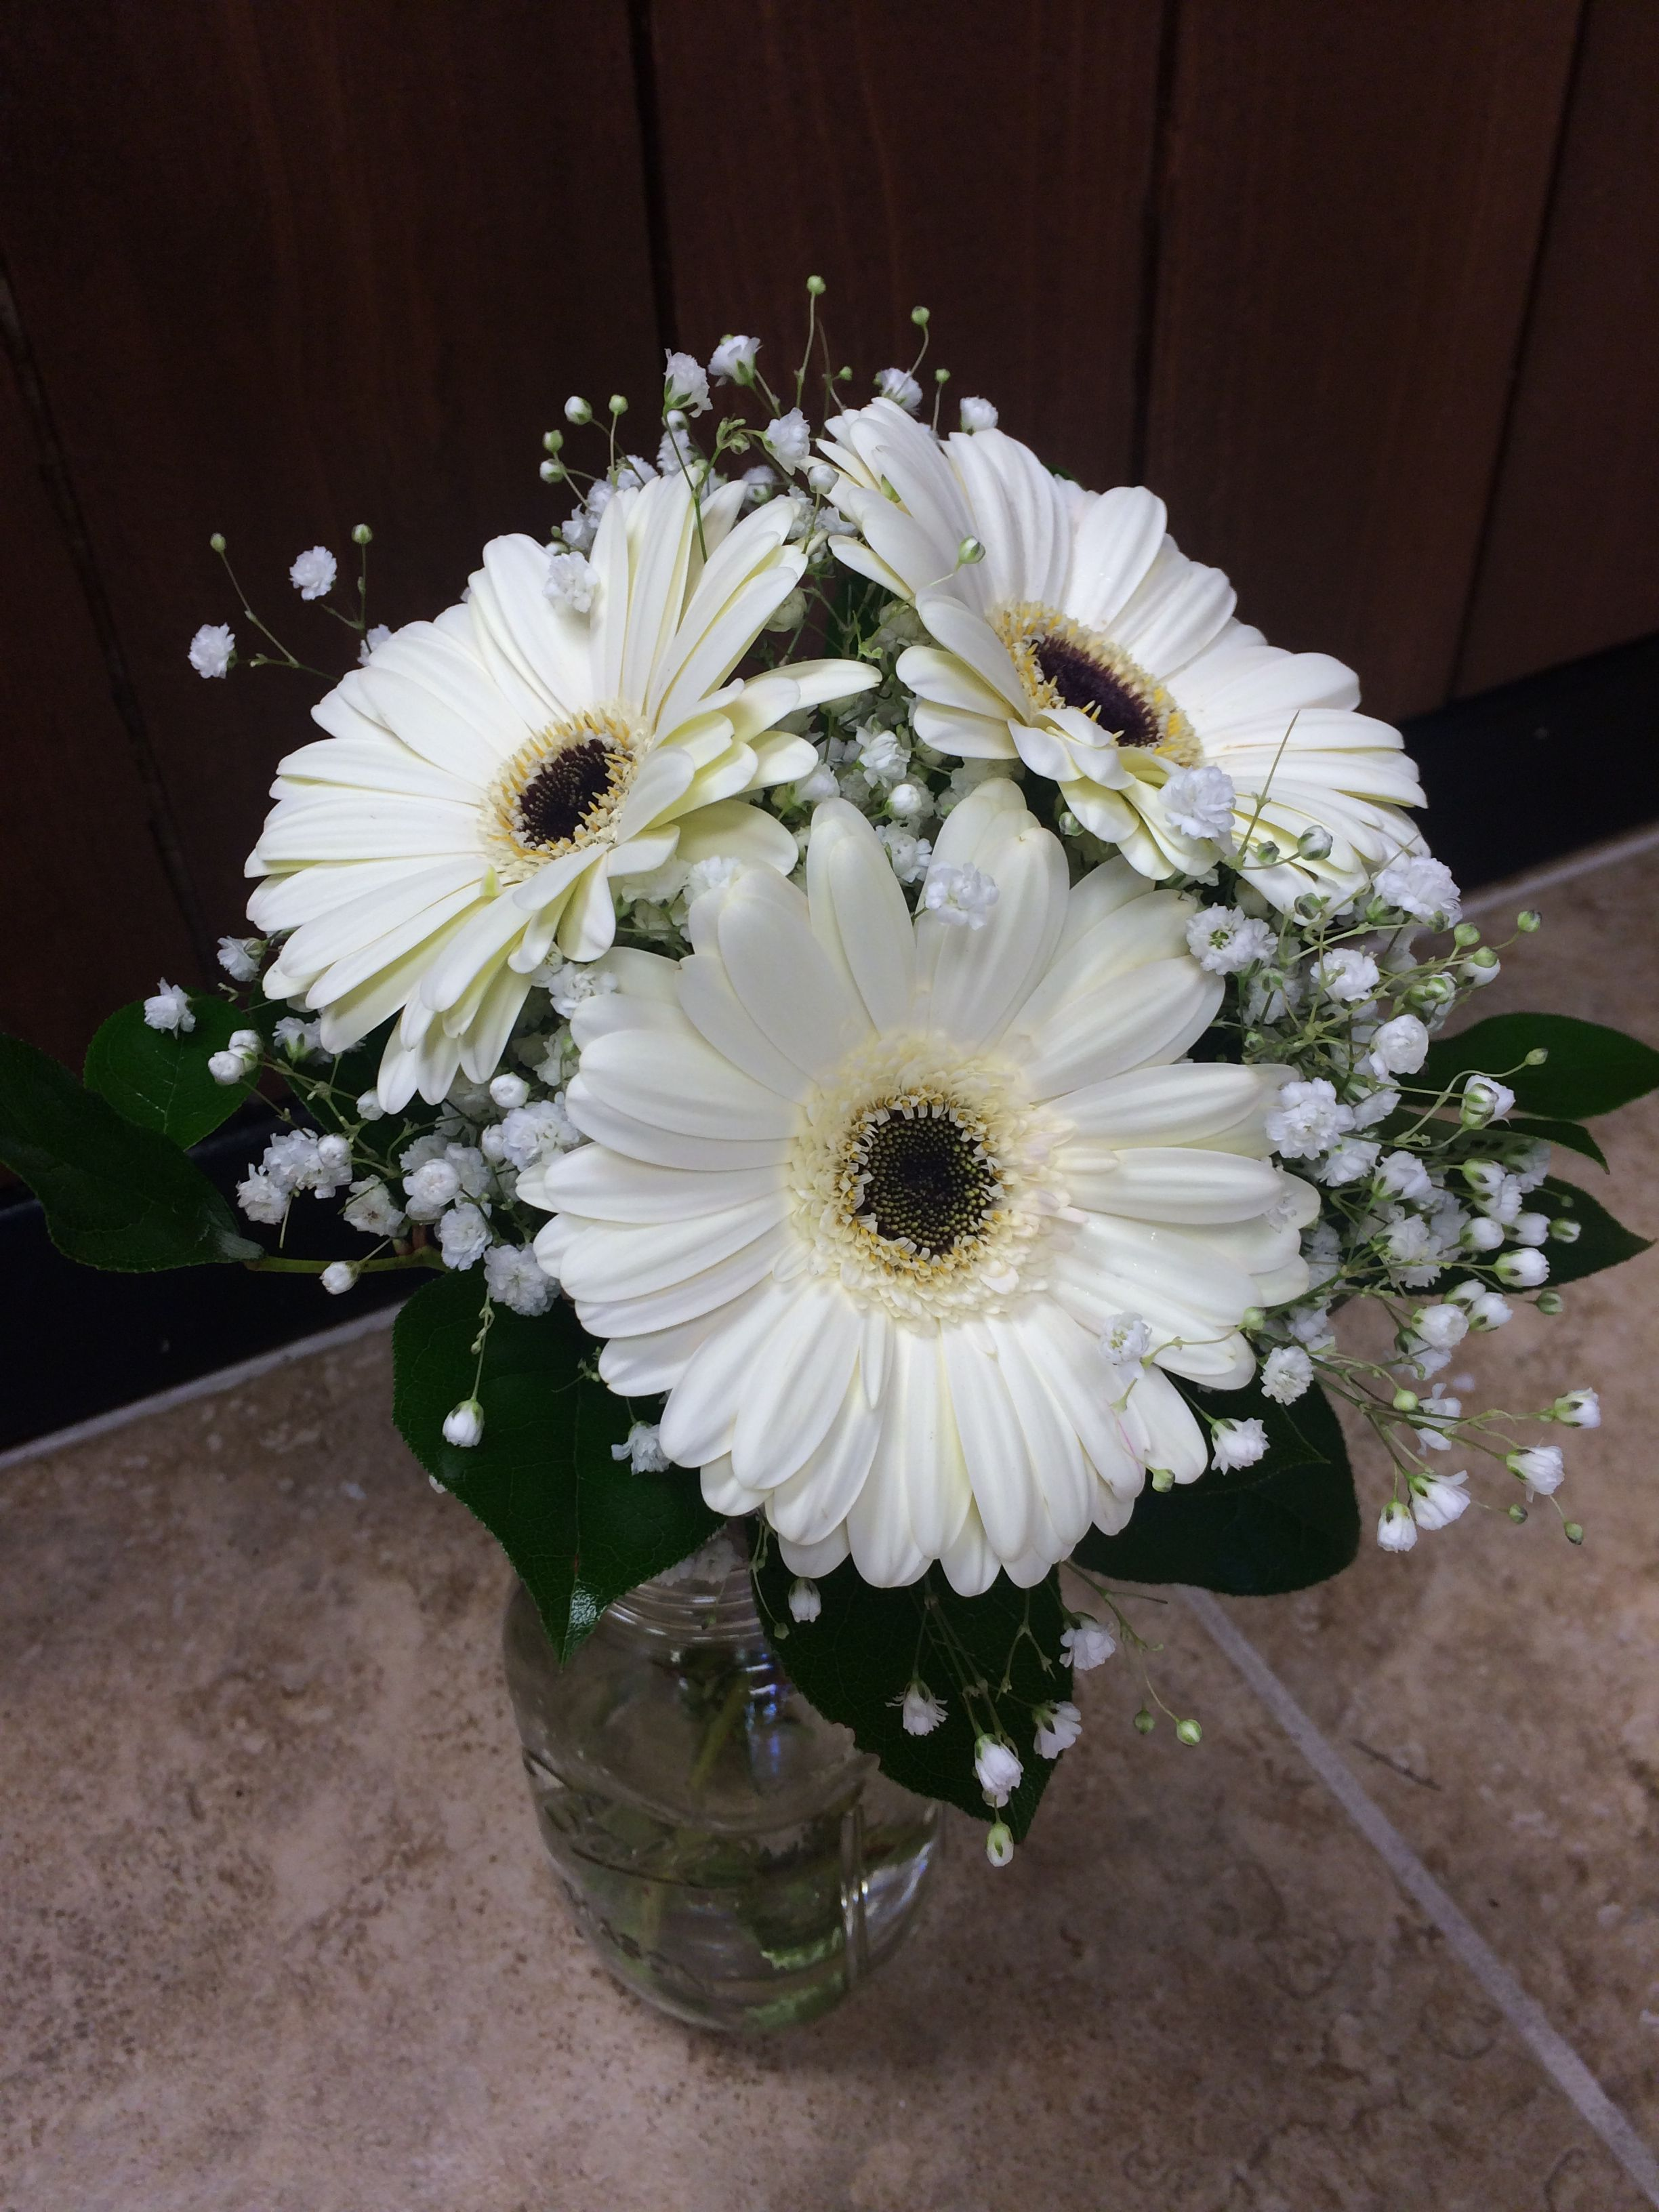 White gerbera daisy bouquet with baby s breath and greens